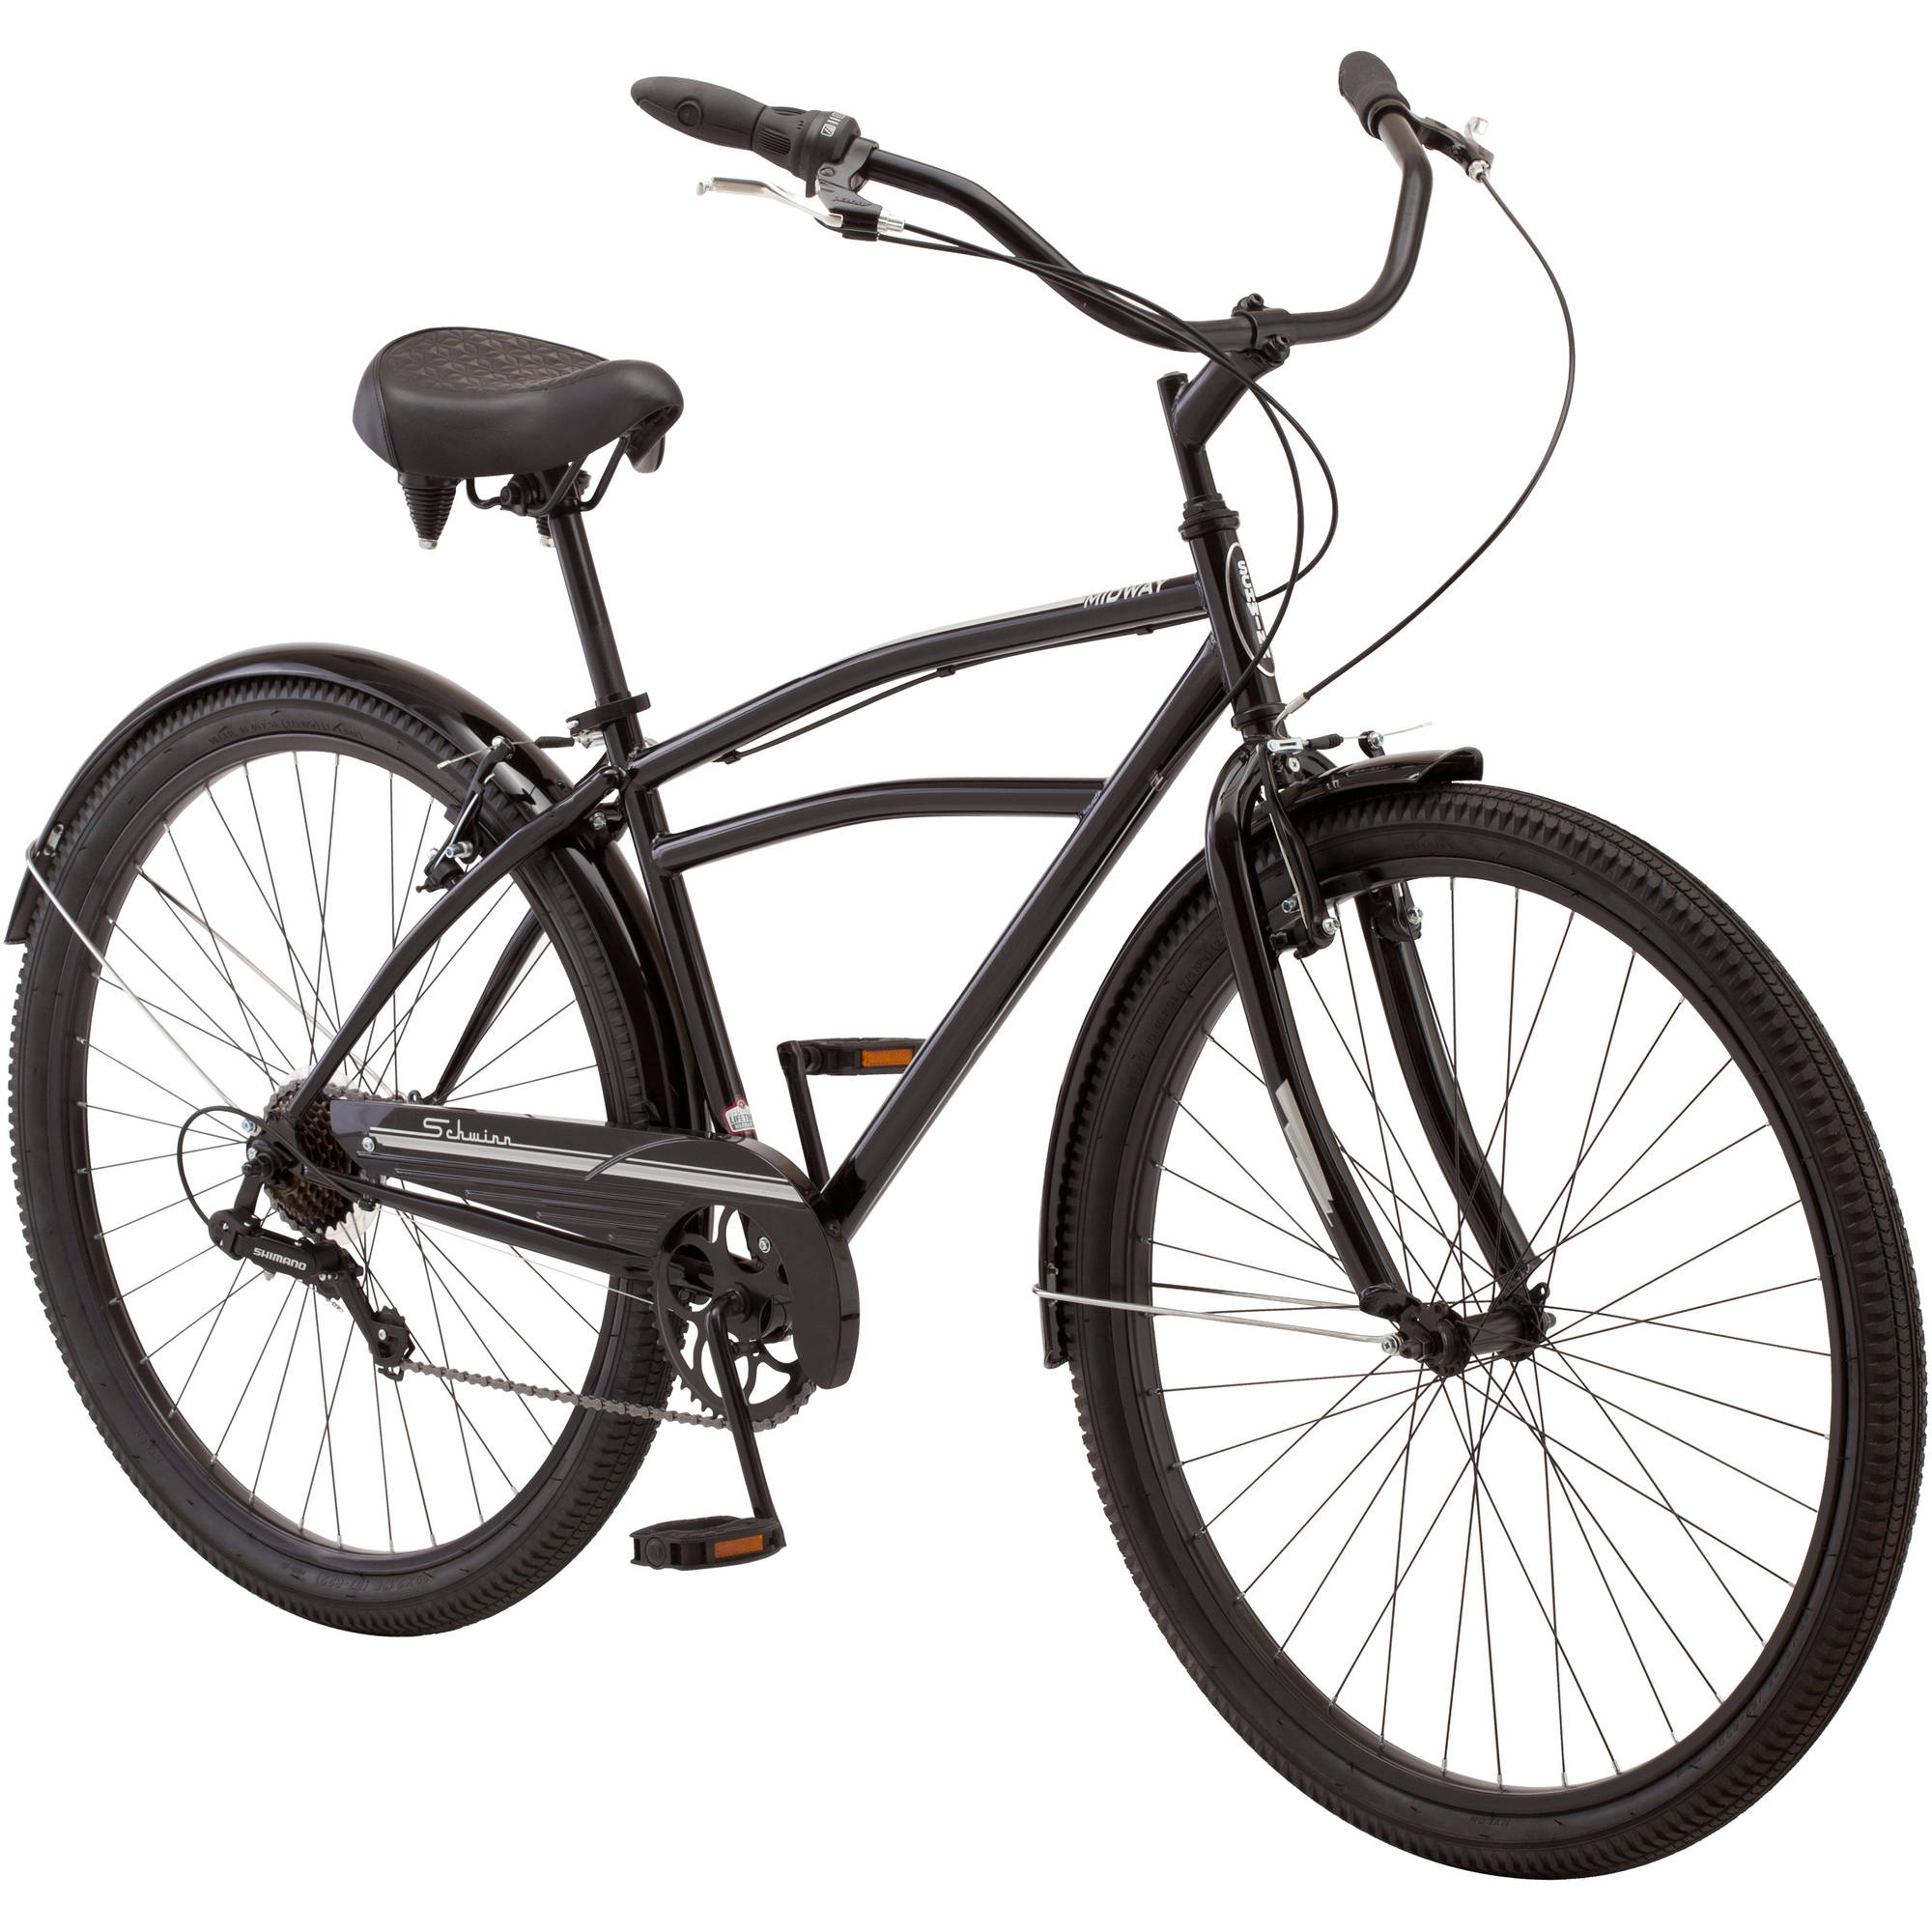 "Schwinn 29"" Men's Midway Cruiser Bike by Pacific Cycle"